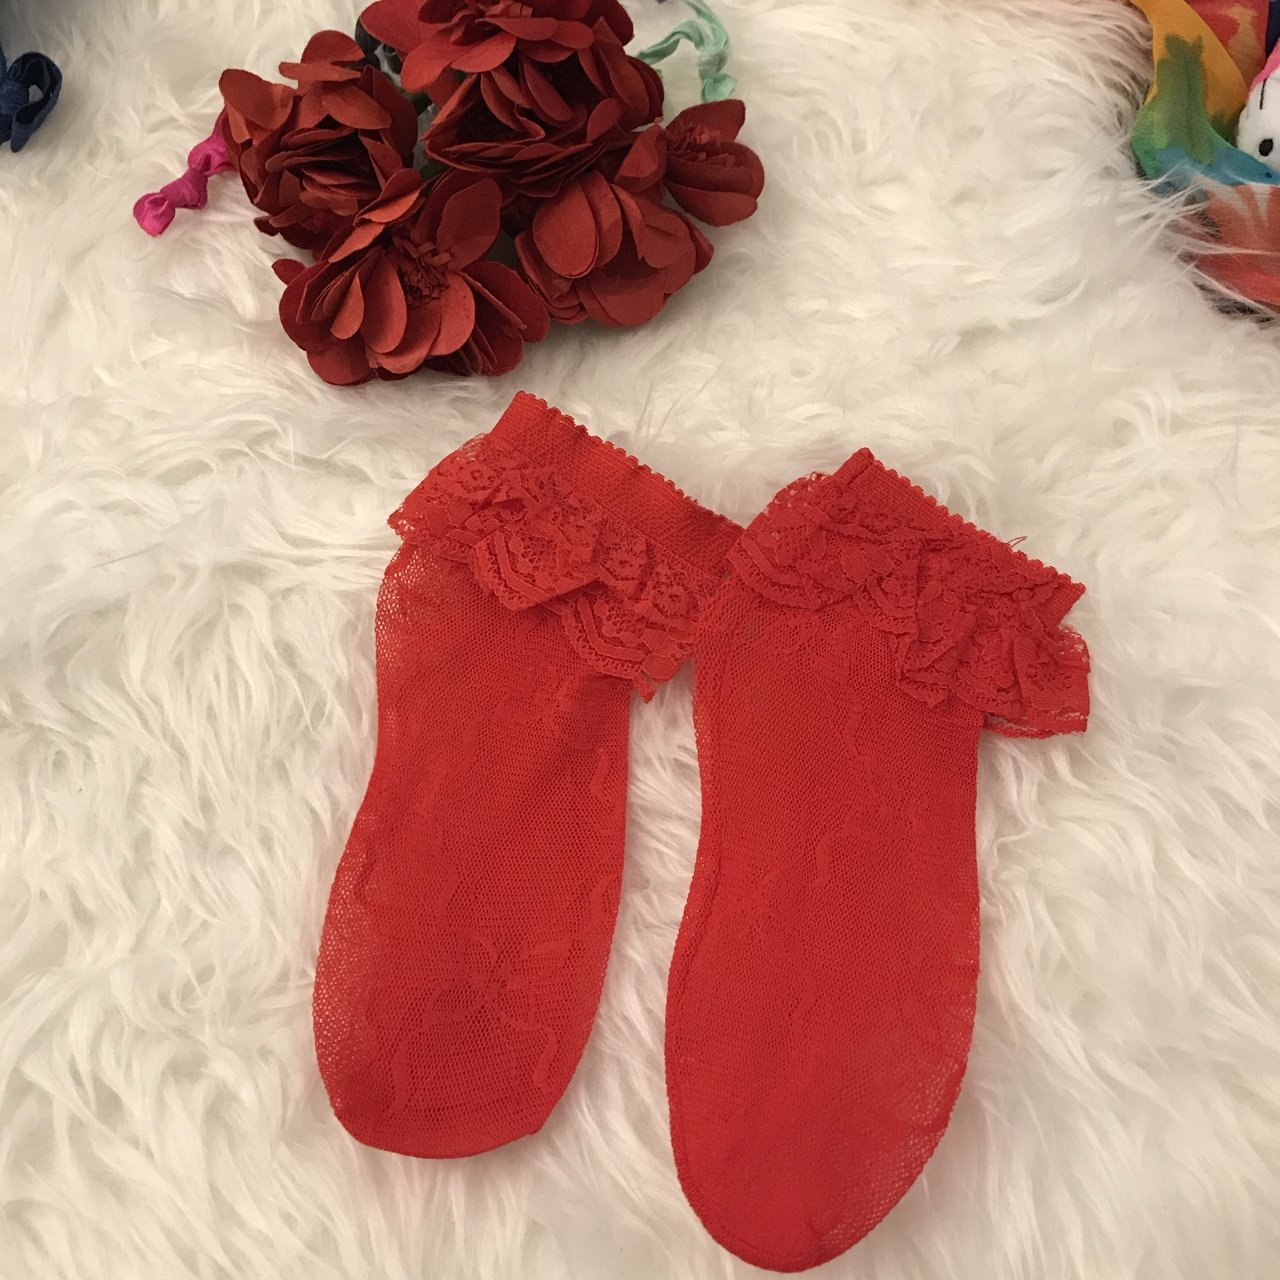 2b2d8d824b9 1 pair 🍒 Red lace